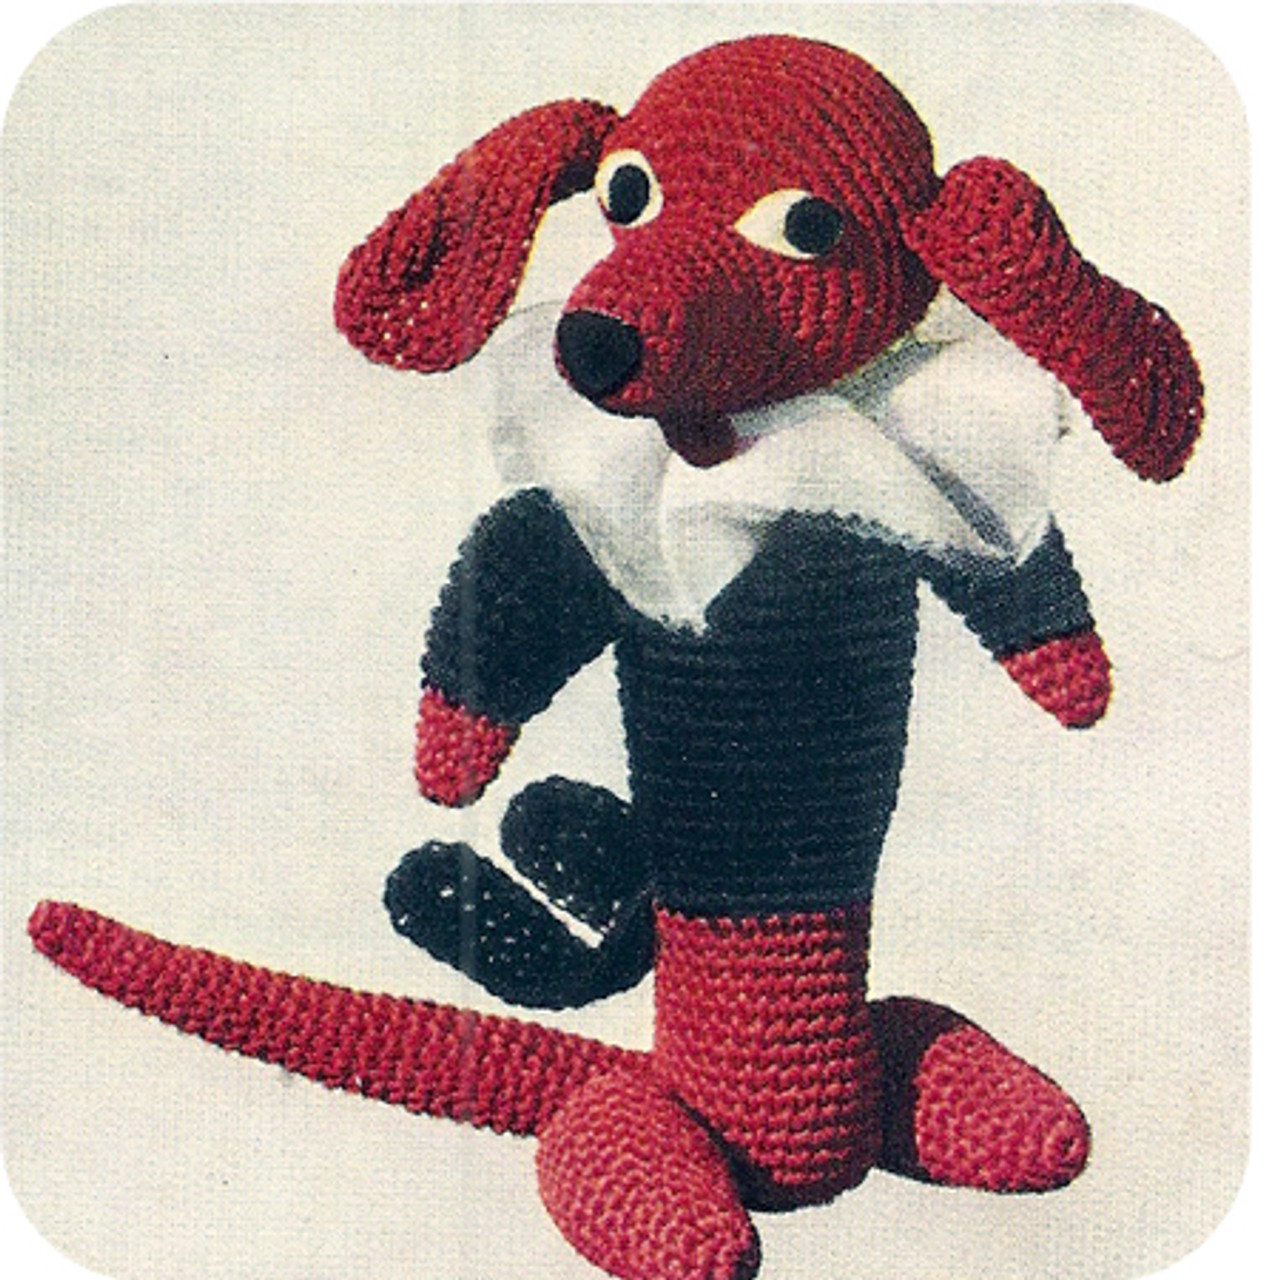 Stuffed Duchshund Crochet Dog Pattern